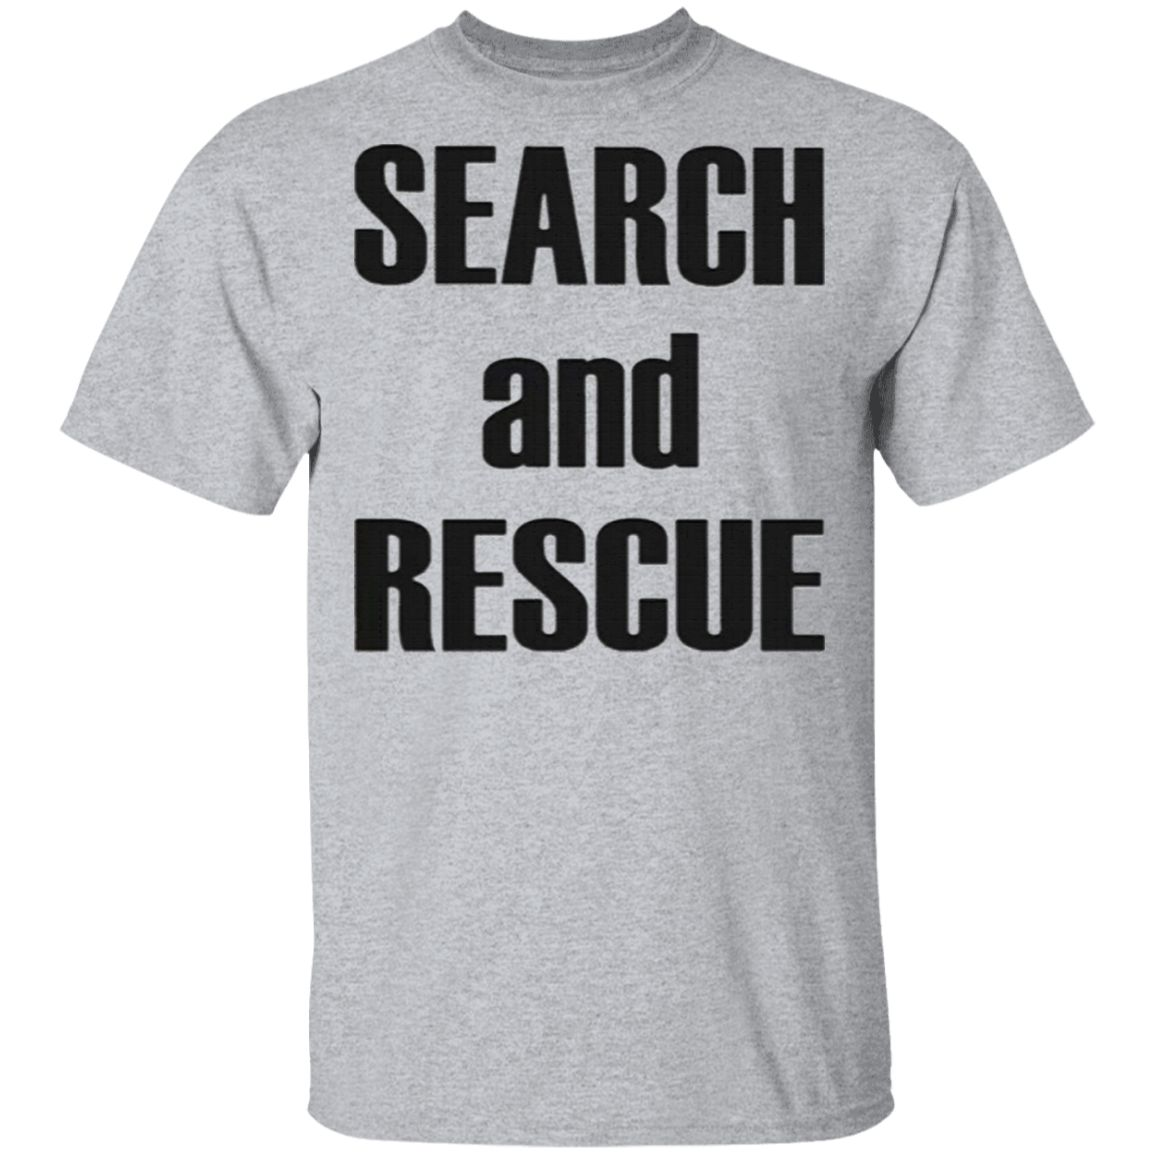 Search and rescue shirt